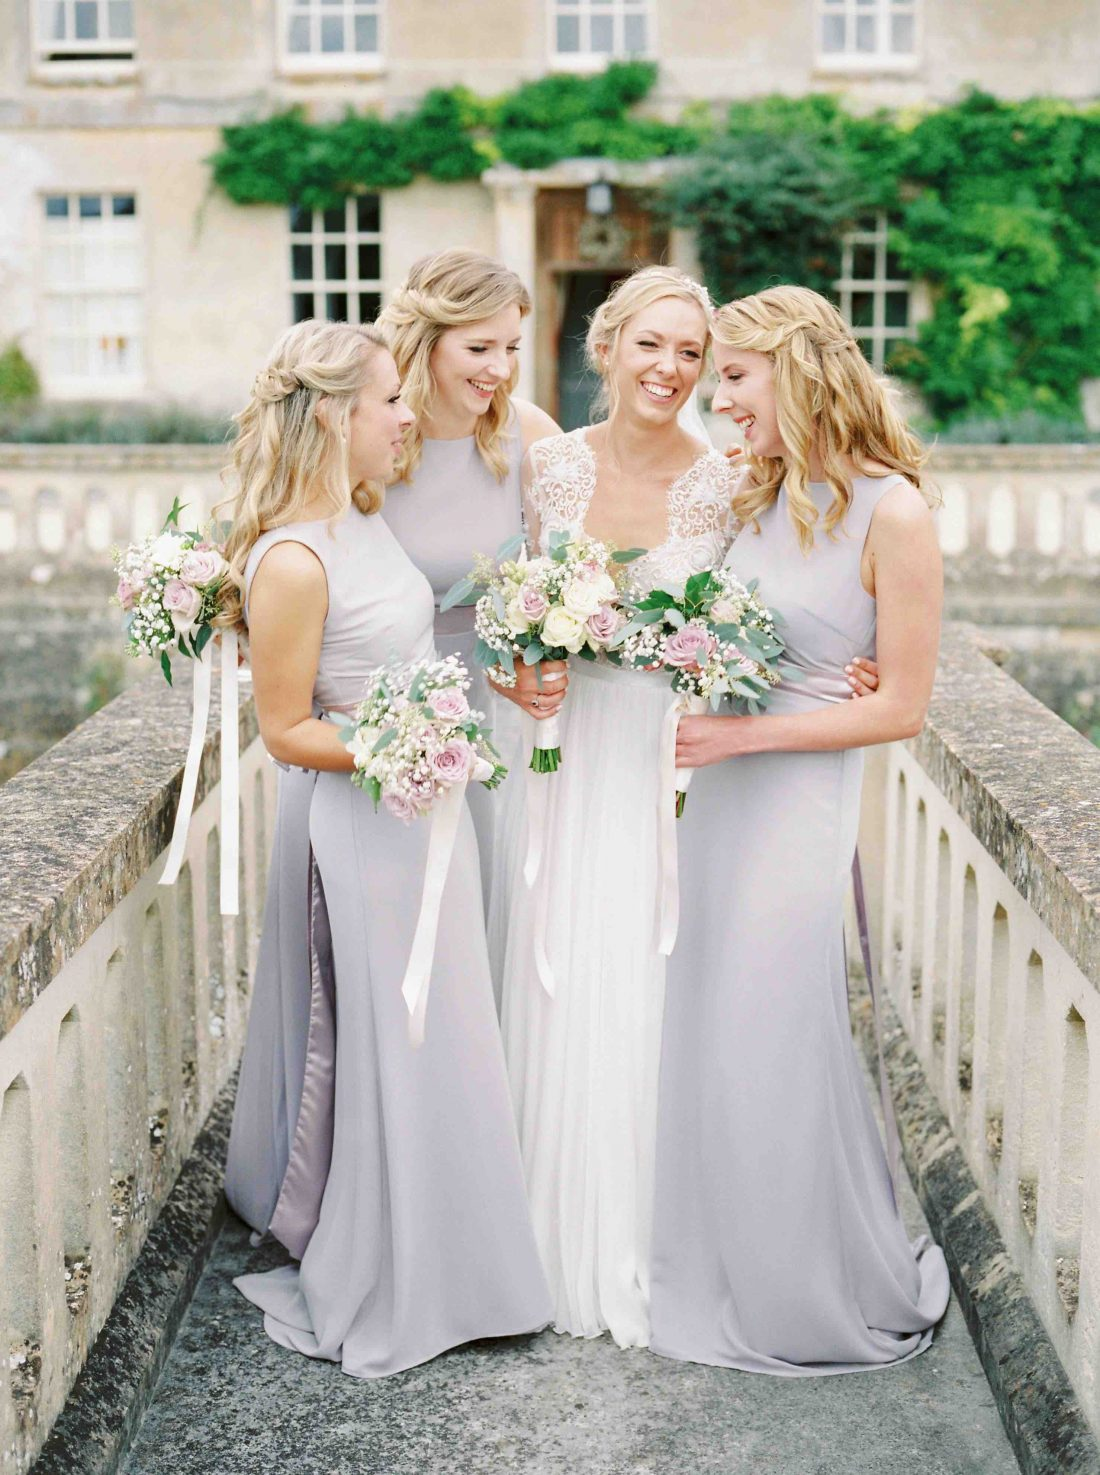 maxwell-wedding-at-dauntsey-park-house-wiltshire-by-imogen-xiana-photography-435-copy